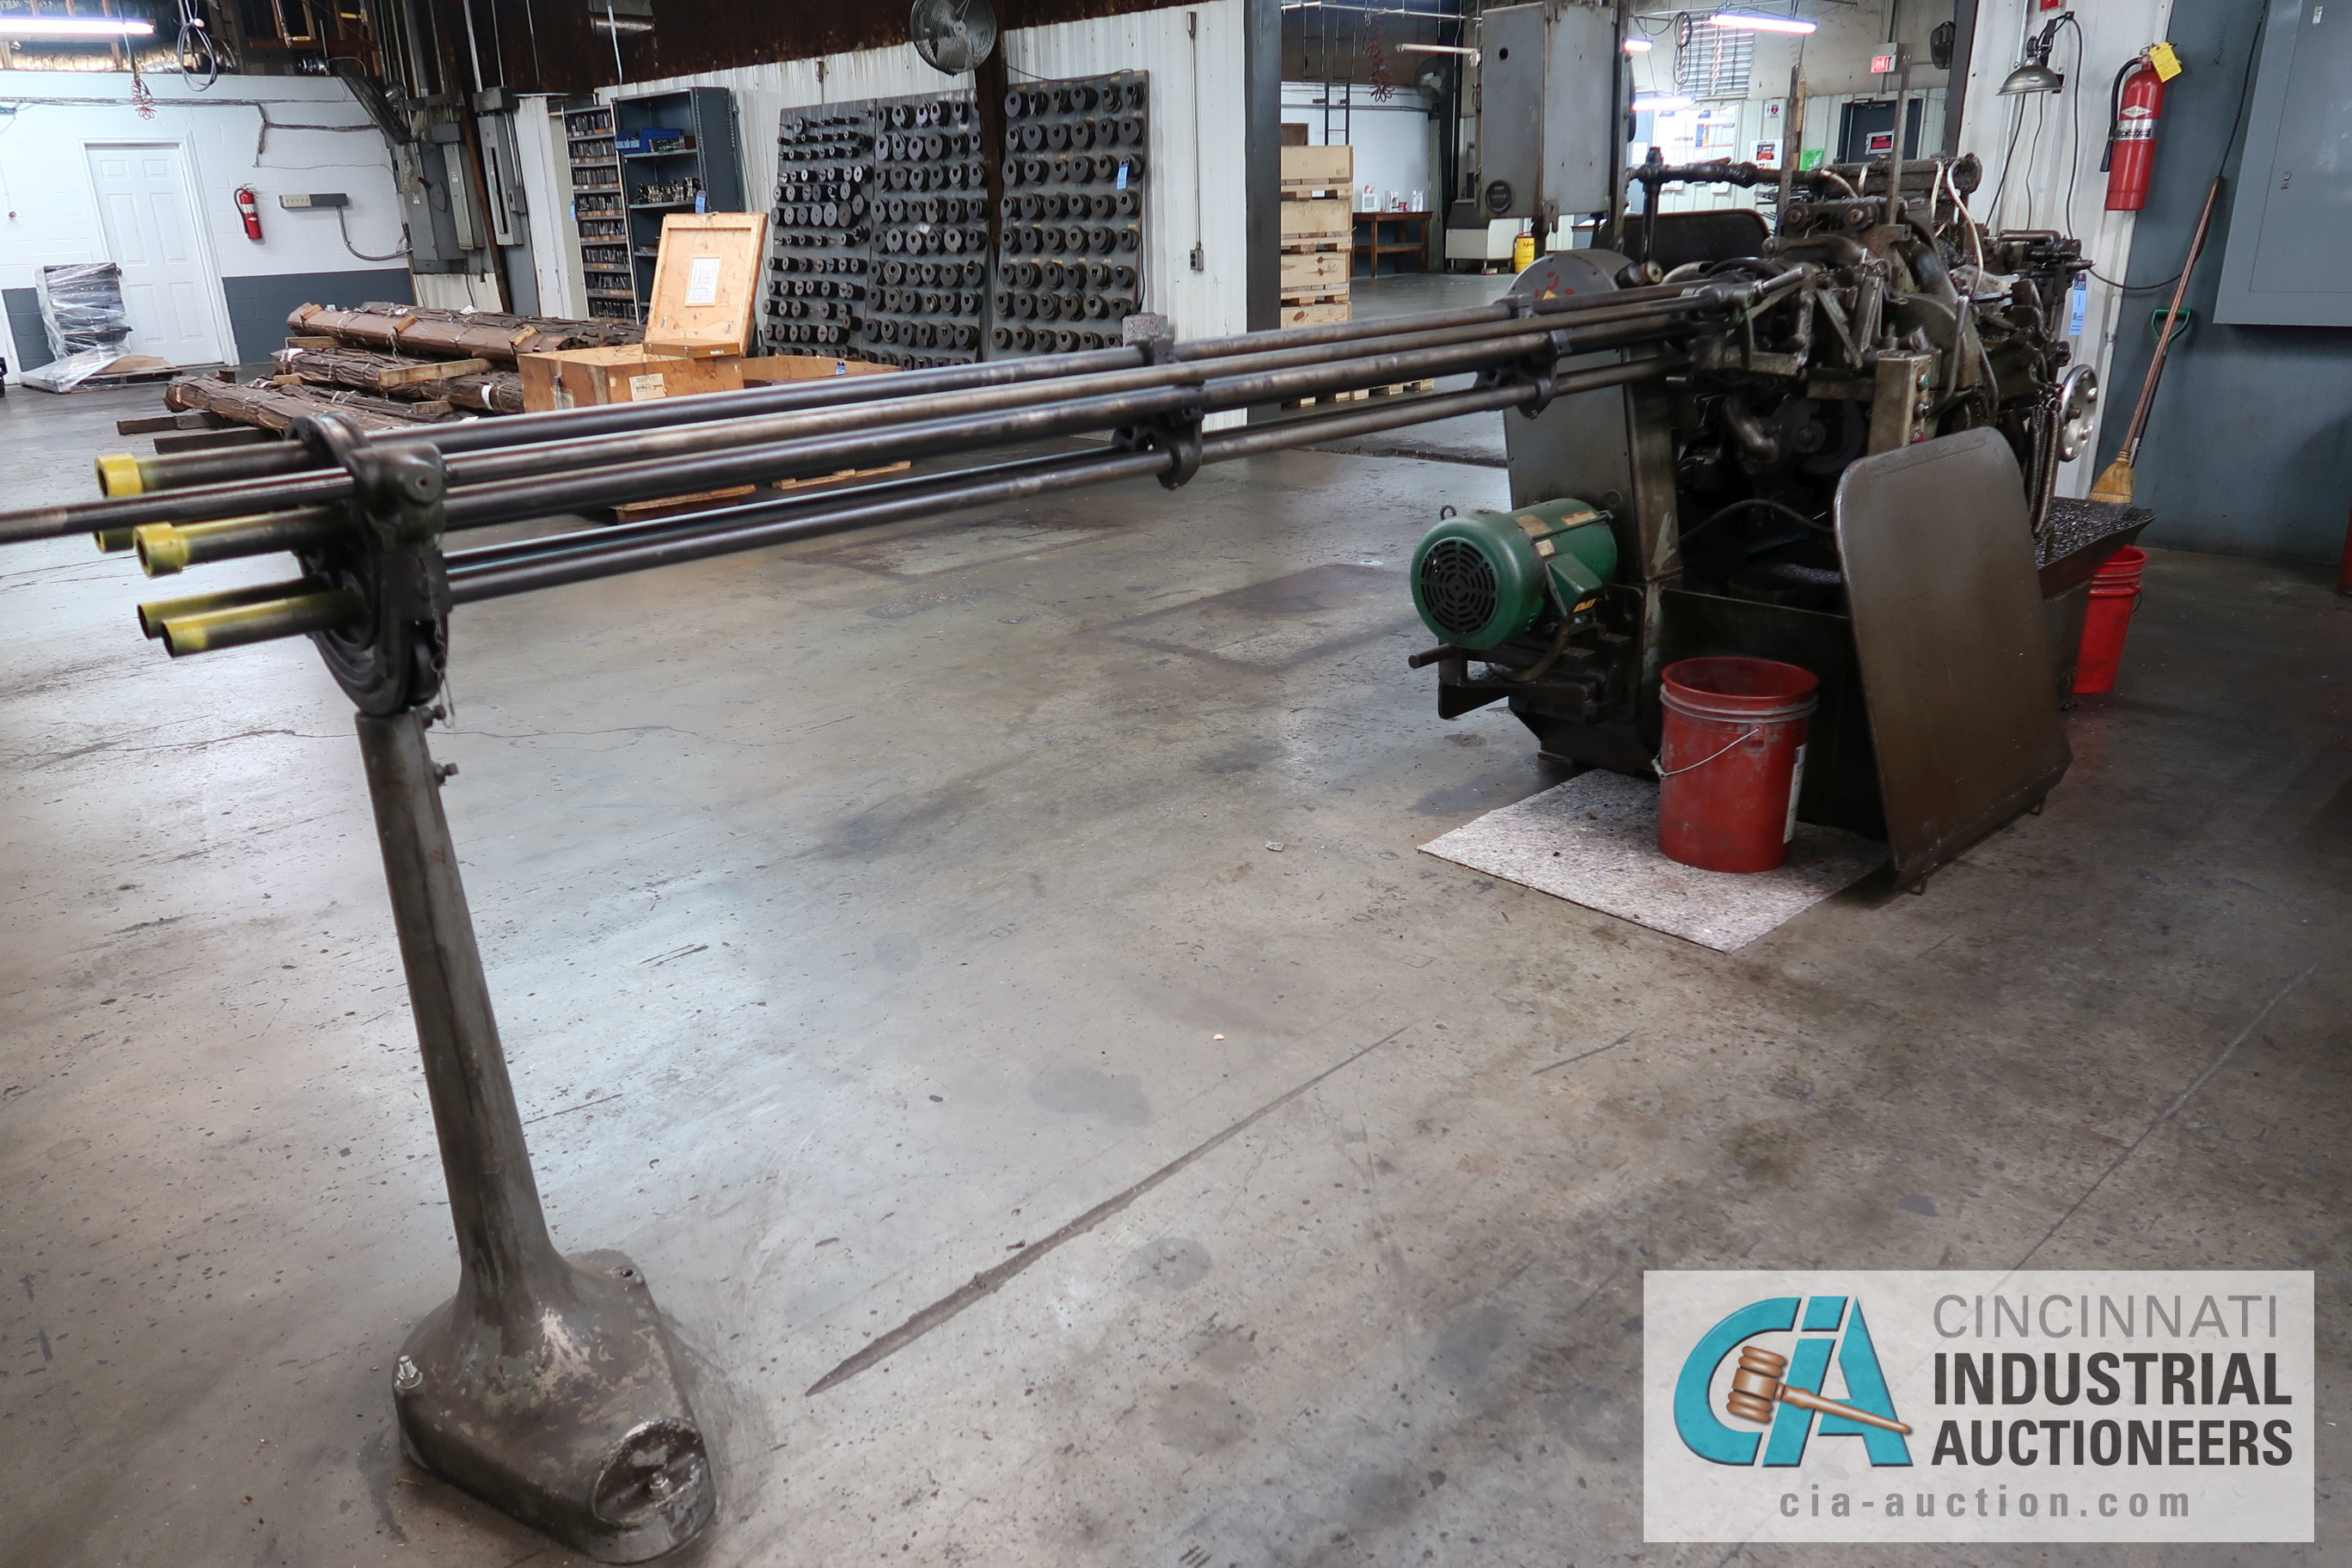 """3/4"""" DAVENPORT 5-SPINDLE SCREW MACHINE; S/N 5698, WITH PICKOFF ATTACHMENT AND THREADING CLUTCH, - Image 4 of 4"""